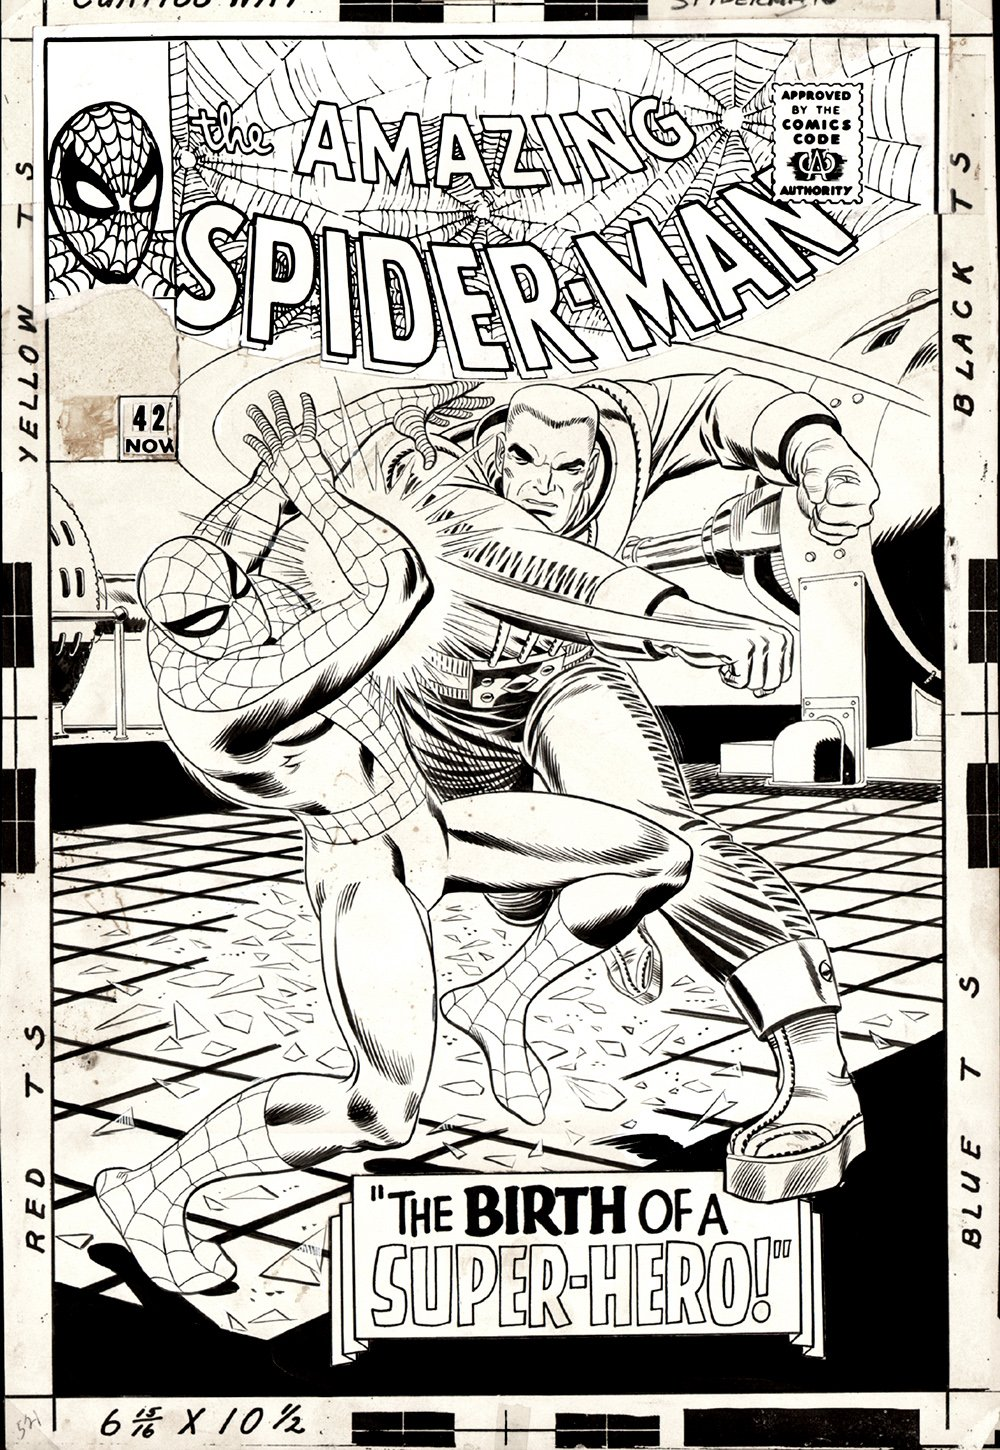 Amazing Spider-Man #42 Cover (Large Art) SOLD SOLD SOLD!